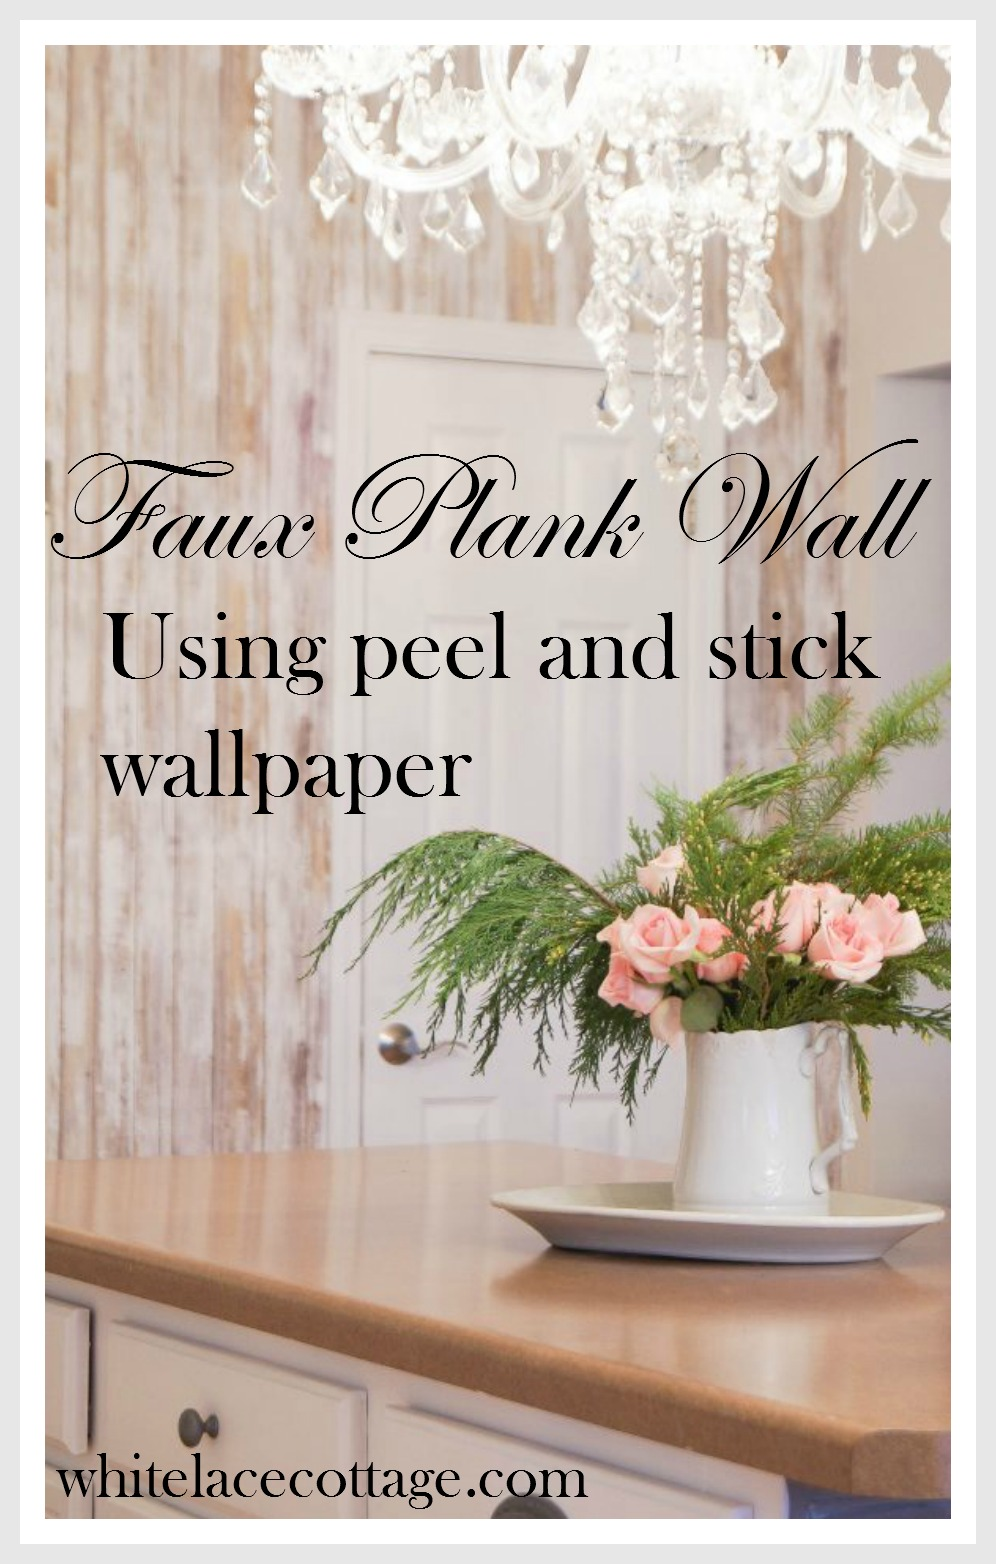 Simple Kitchen Wallpaper accent wall and simple kitchen updates - white lace cottage